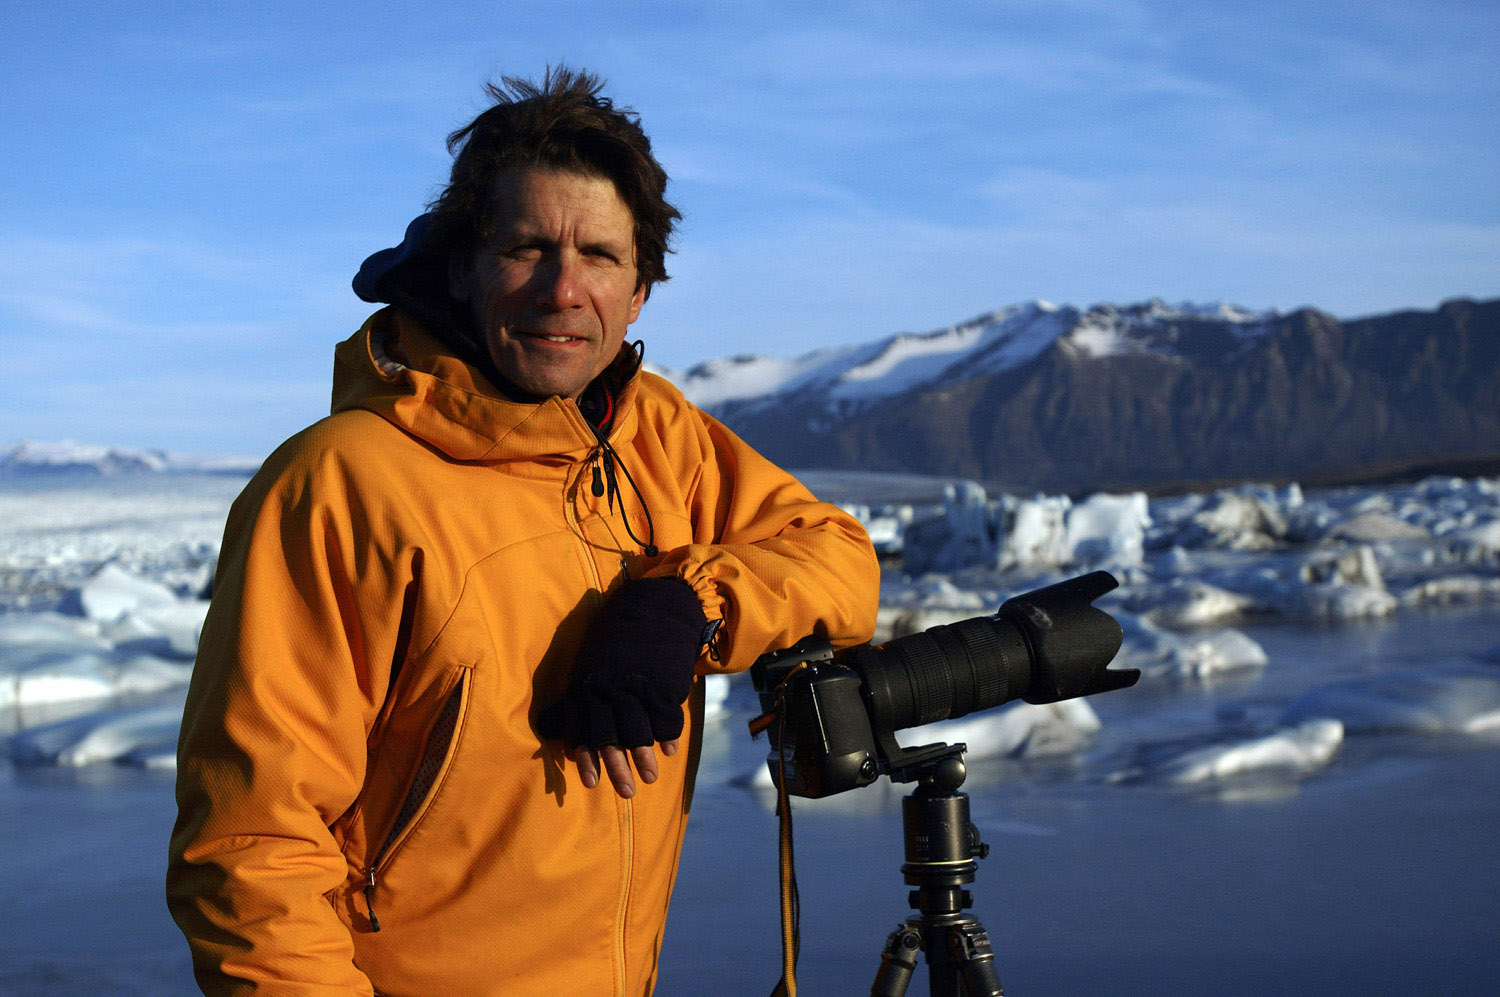 EIS Founder & Director James Balog at Jøkulsårlon, Iceland